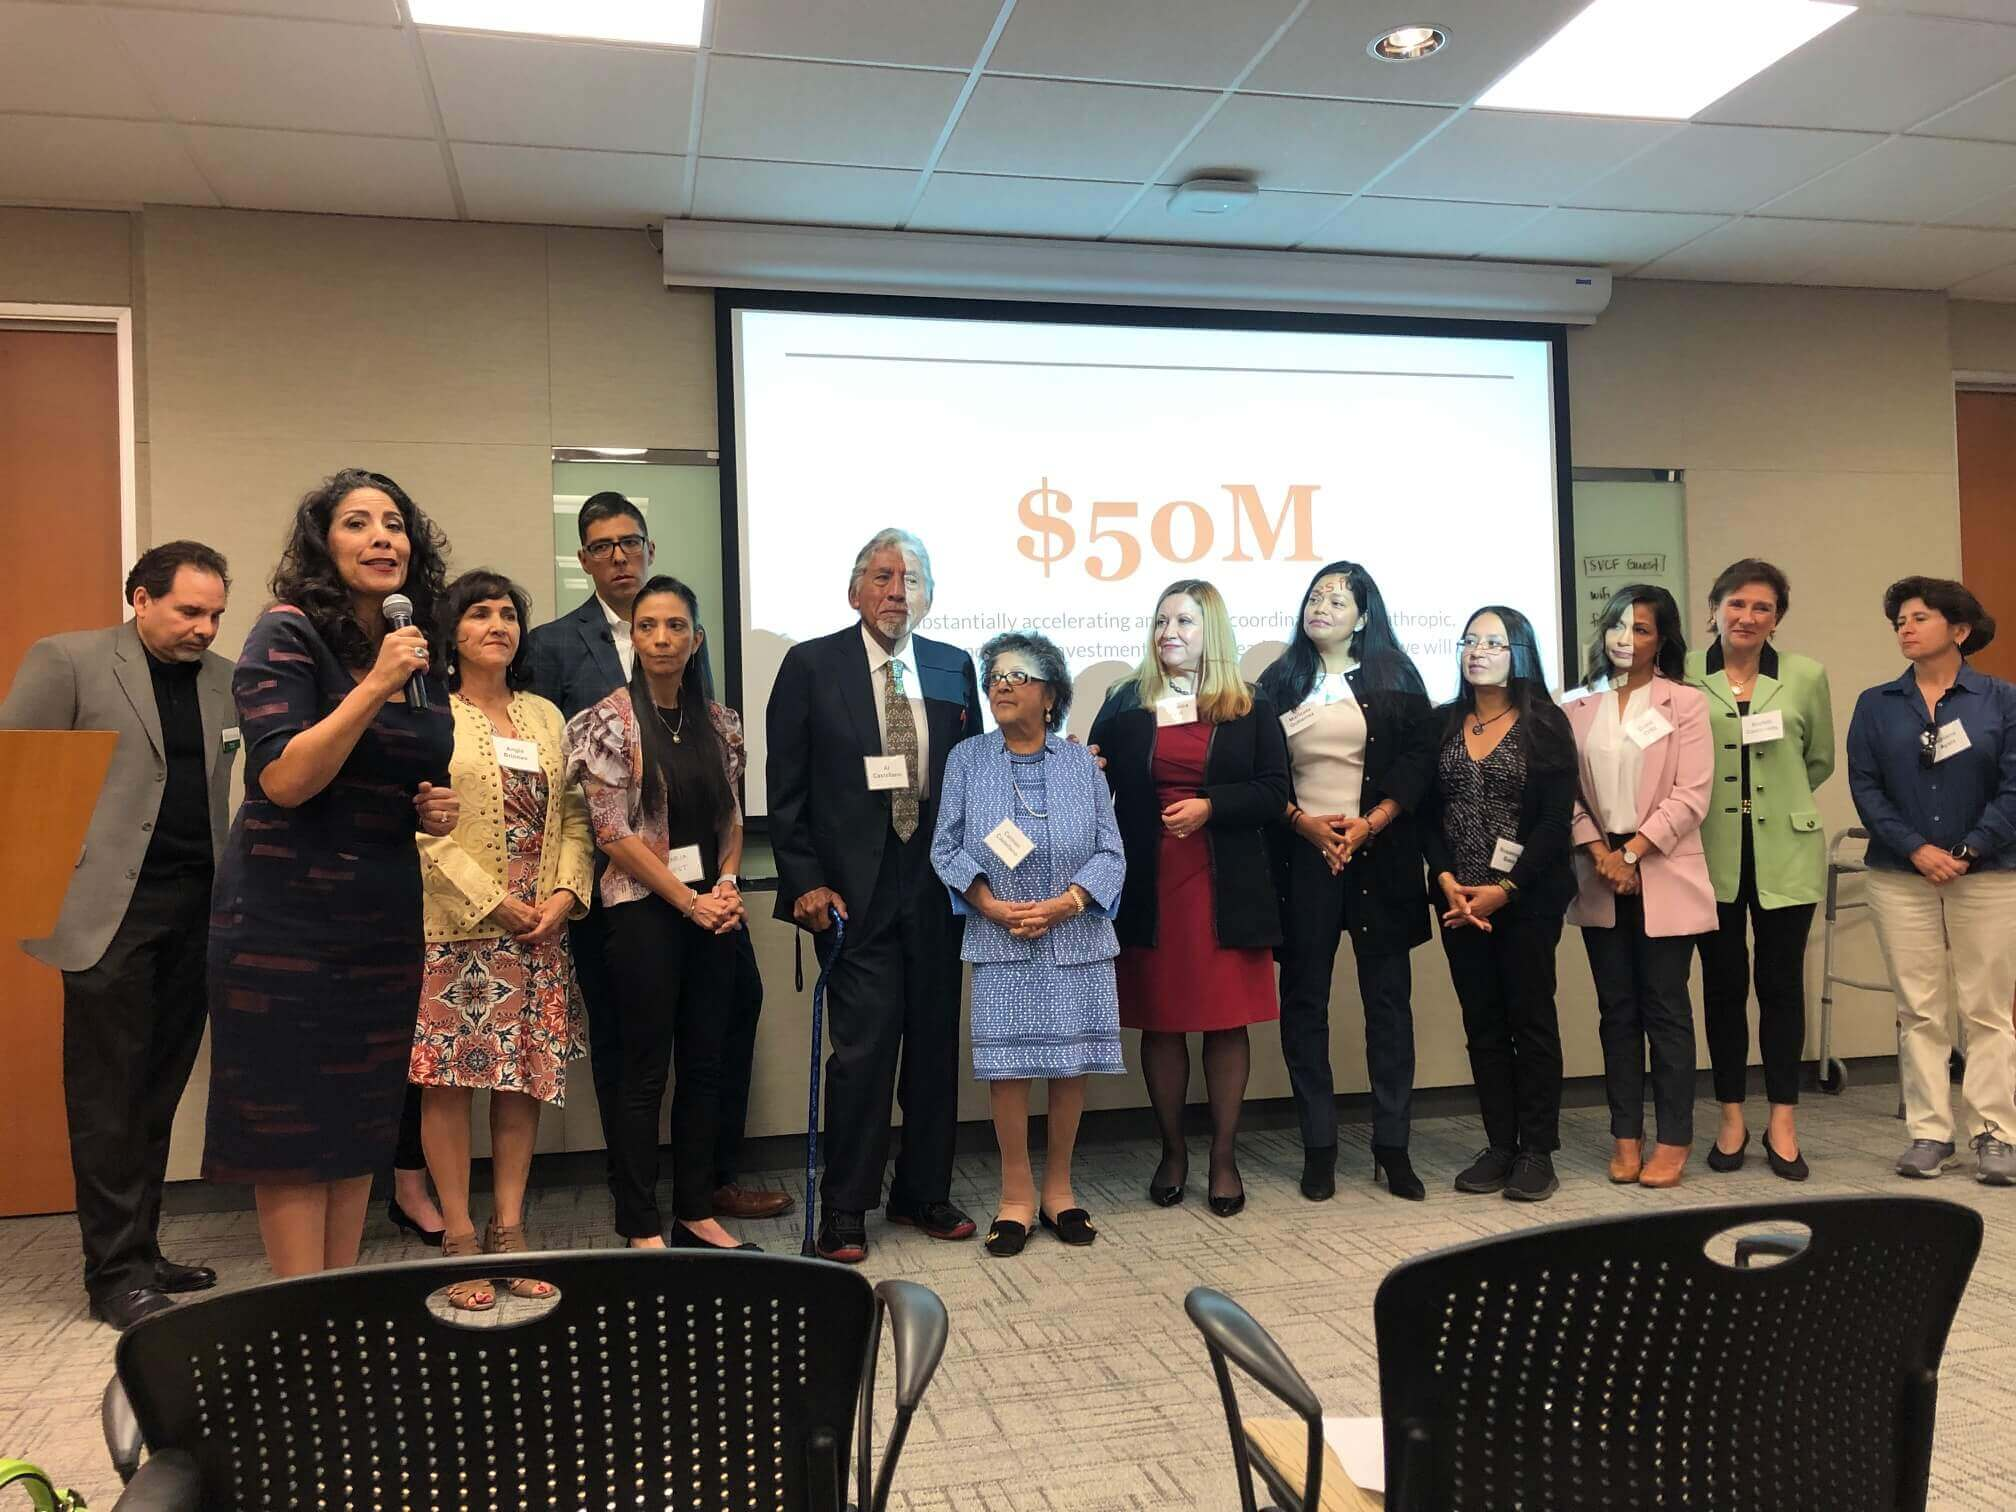 Caption: Castellano Family Foundation Trustees, grantees and philanthropic leaders call for a $50 million investment in Latinx-led organizations in the Silicon Valley.